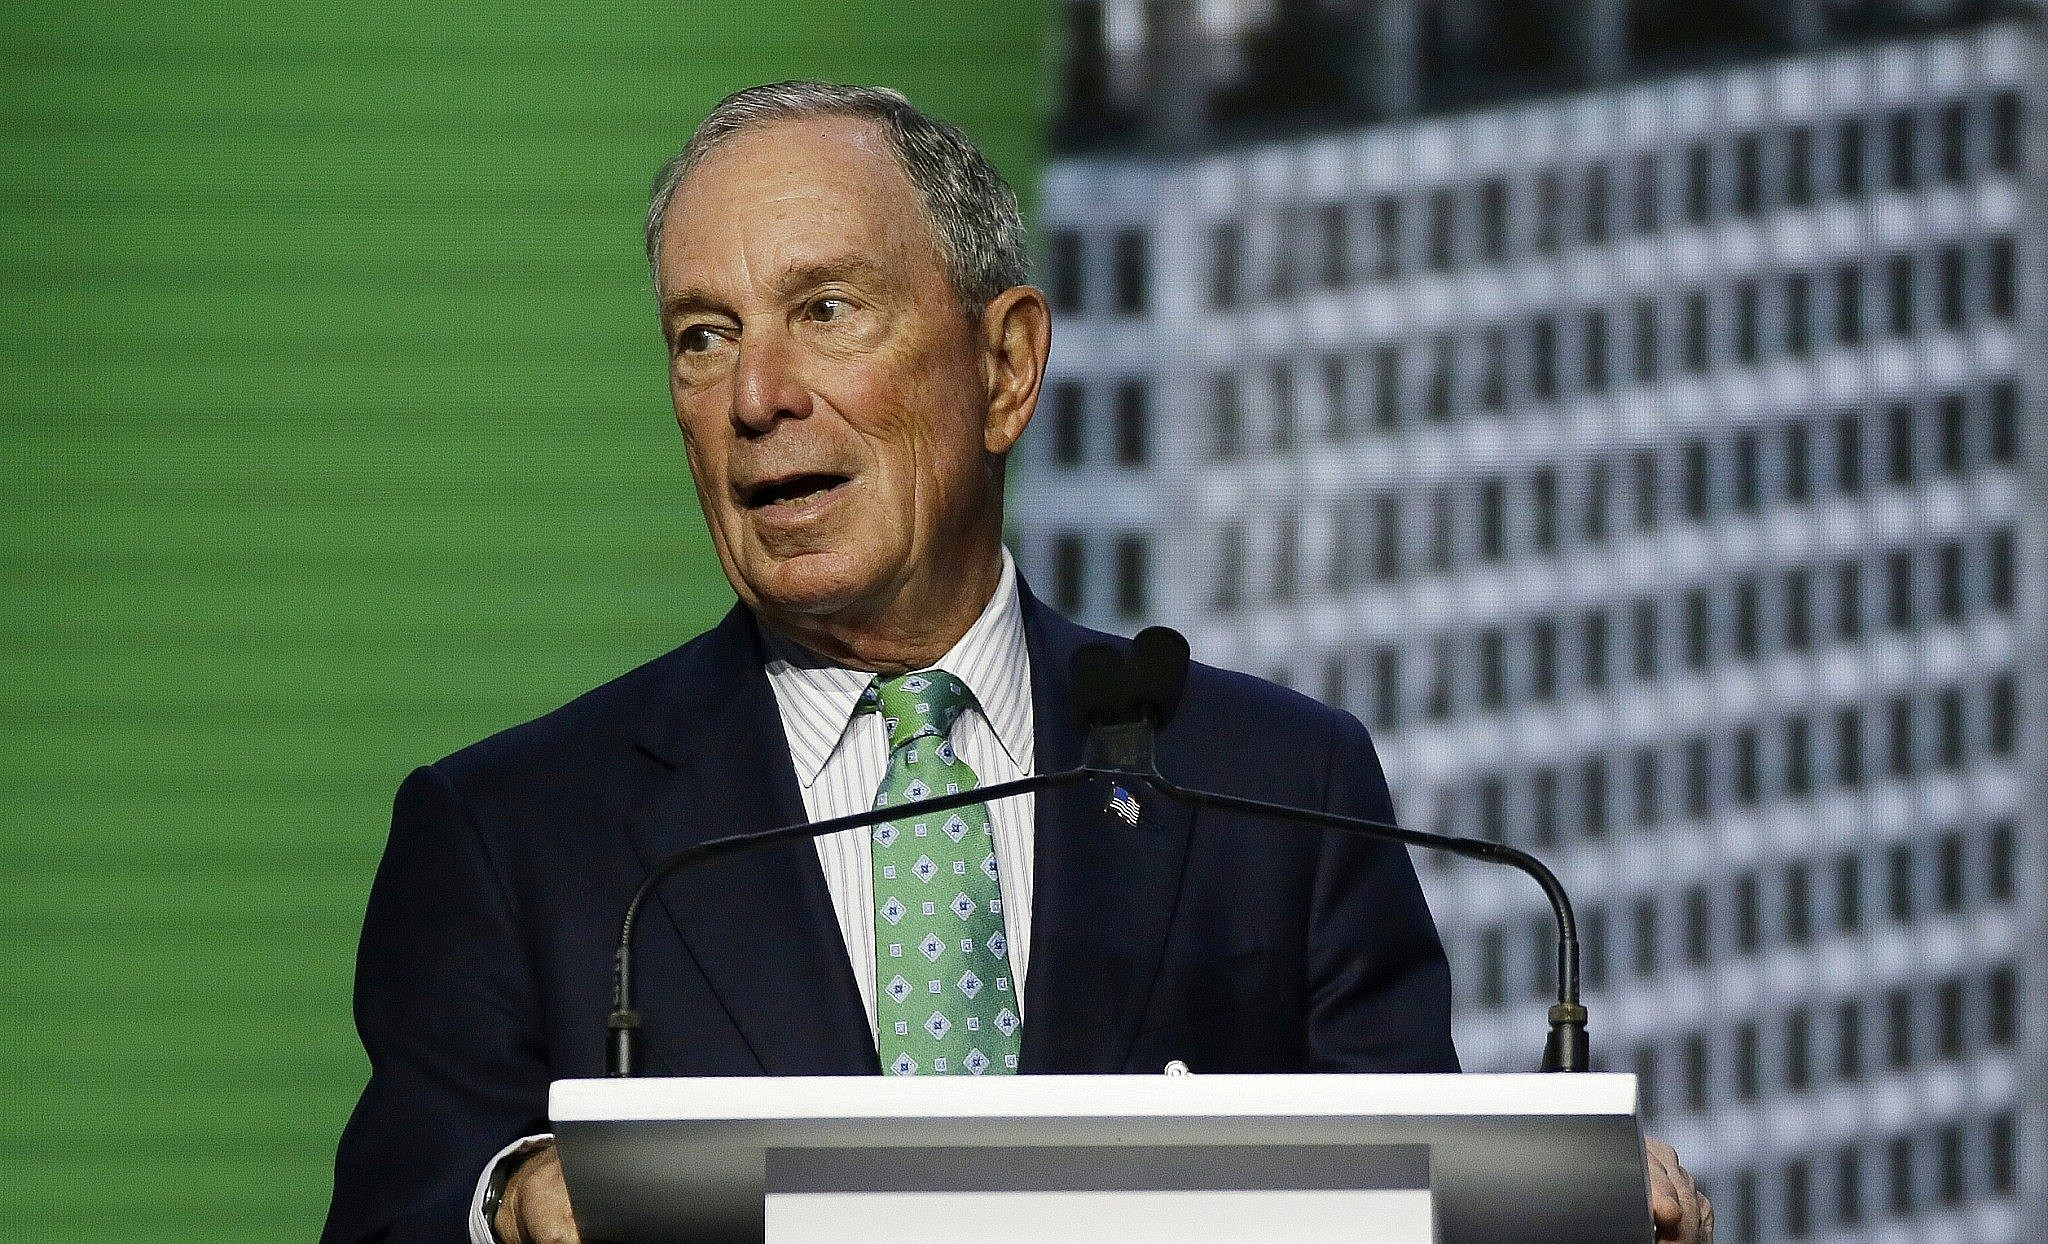 Weighing 2020 Bid, Michael Bloomberg Registers as a Democrat